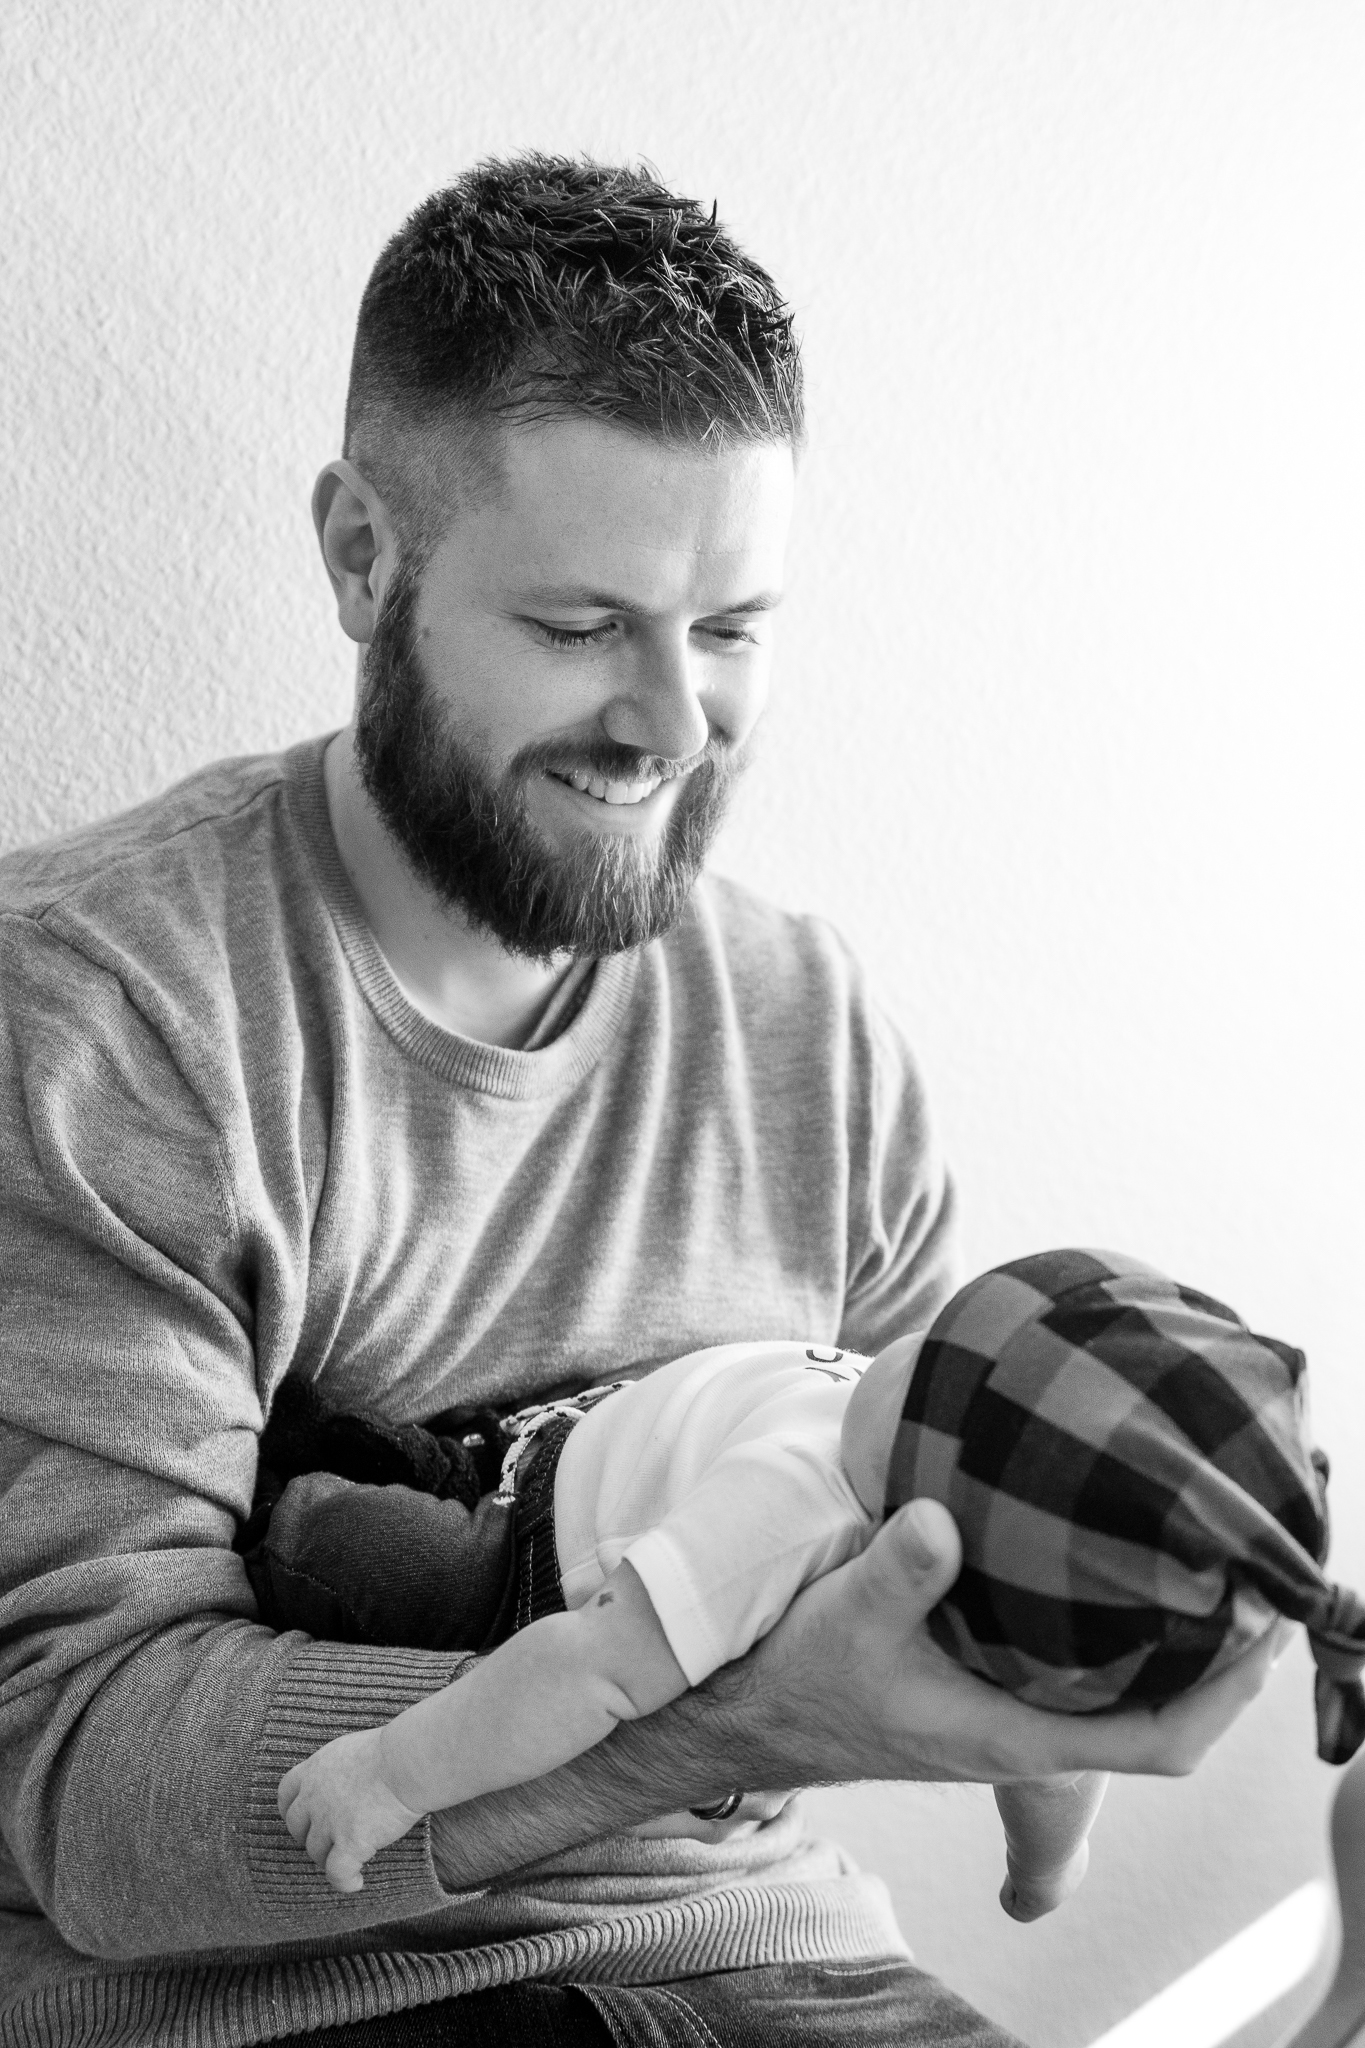 Newborn lifestyle photography of dad holding baby in black and white